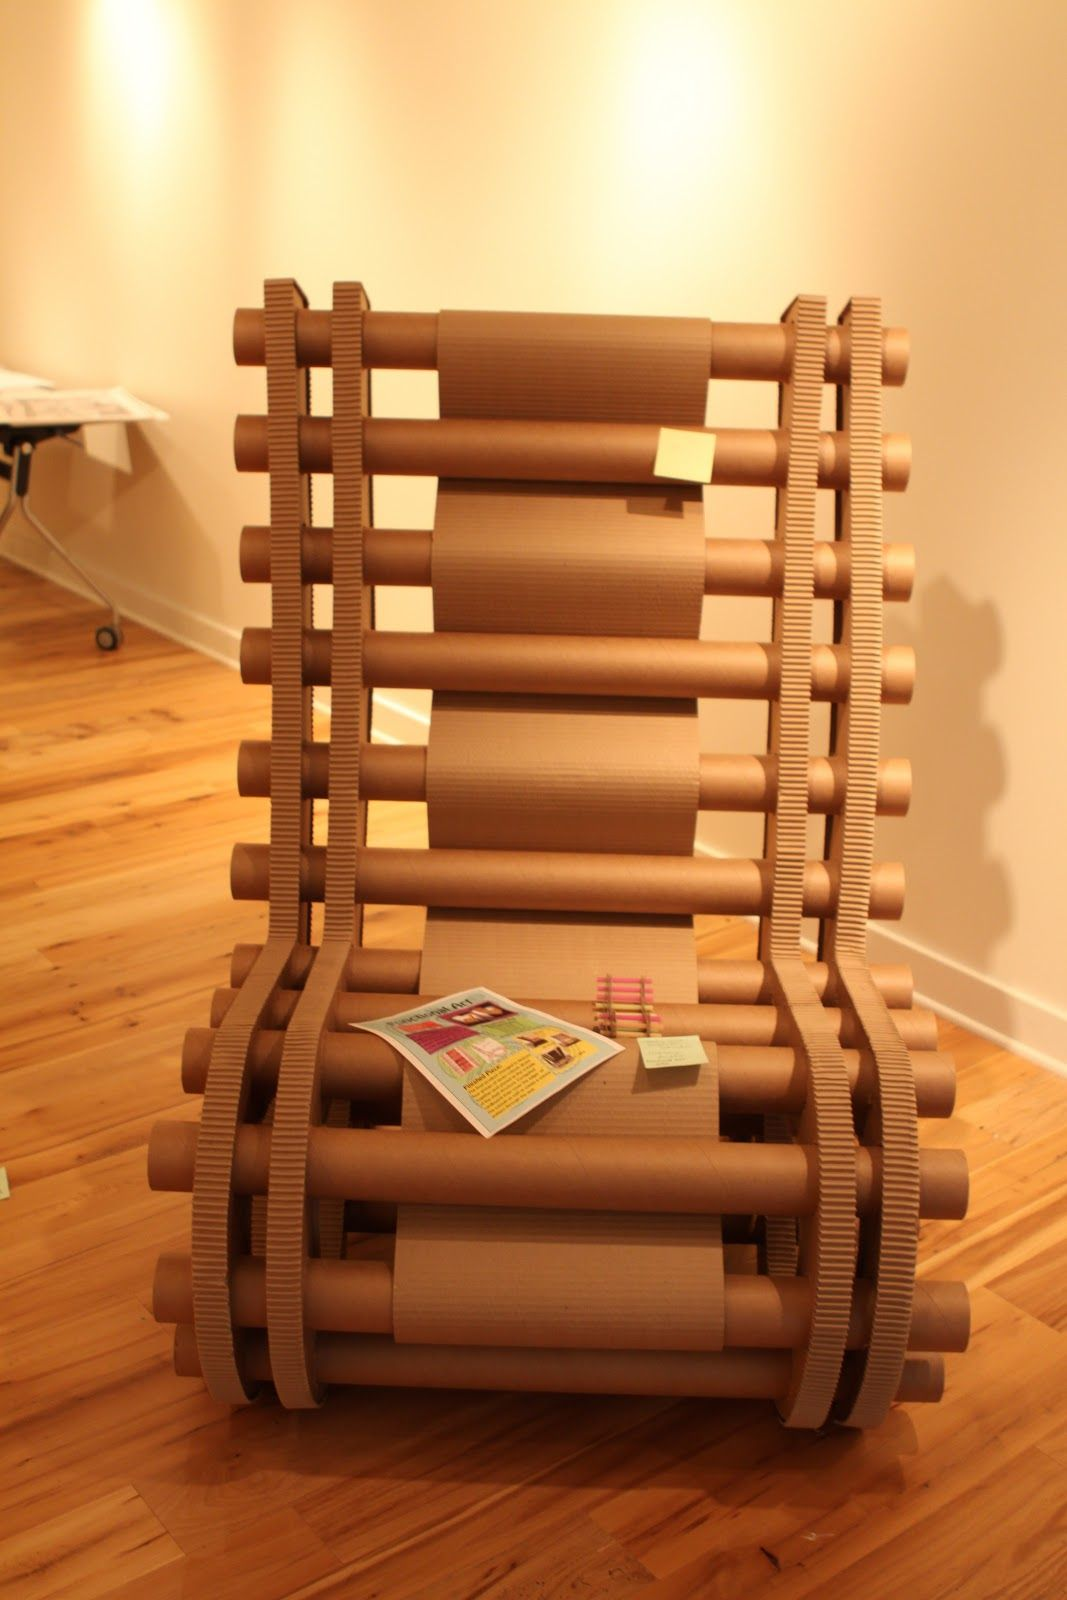 Cardboard Chair Pin By Alyona Chornaya On Carton And Paper Pinterest